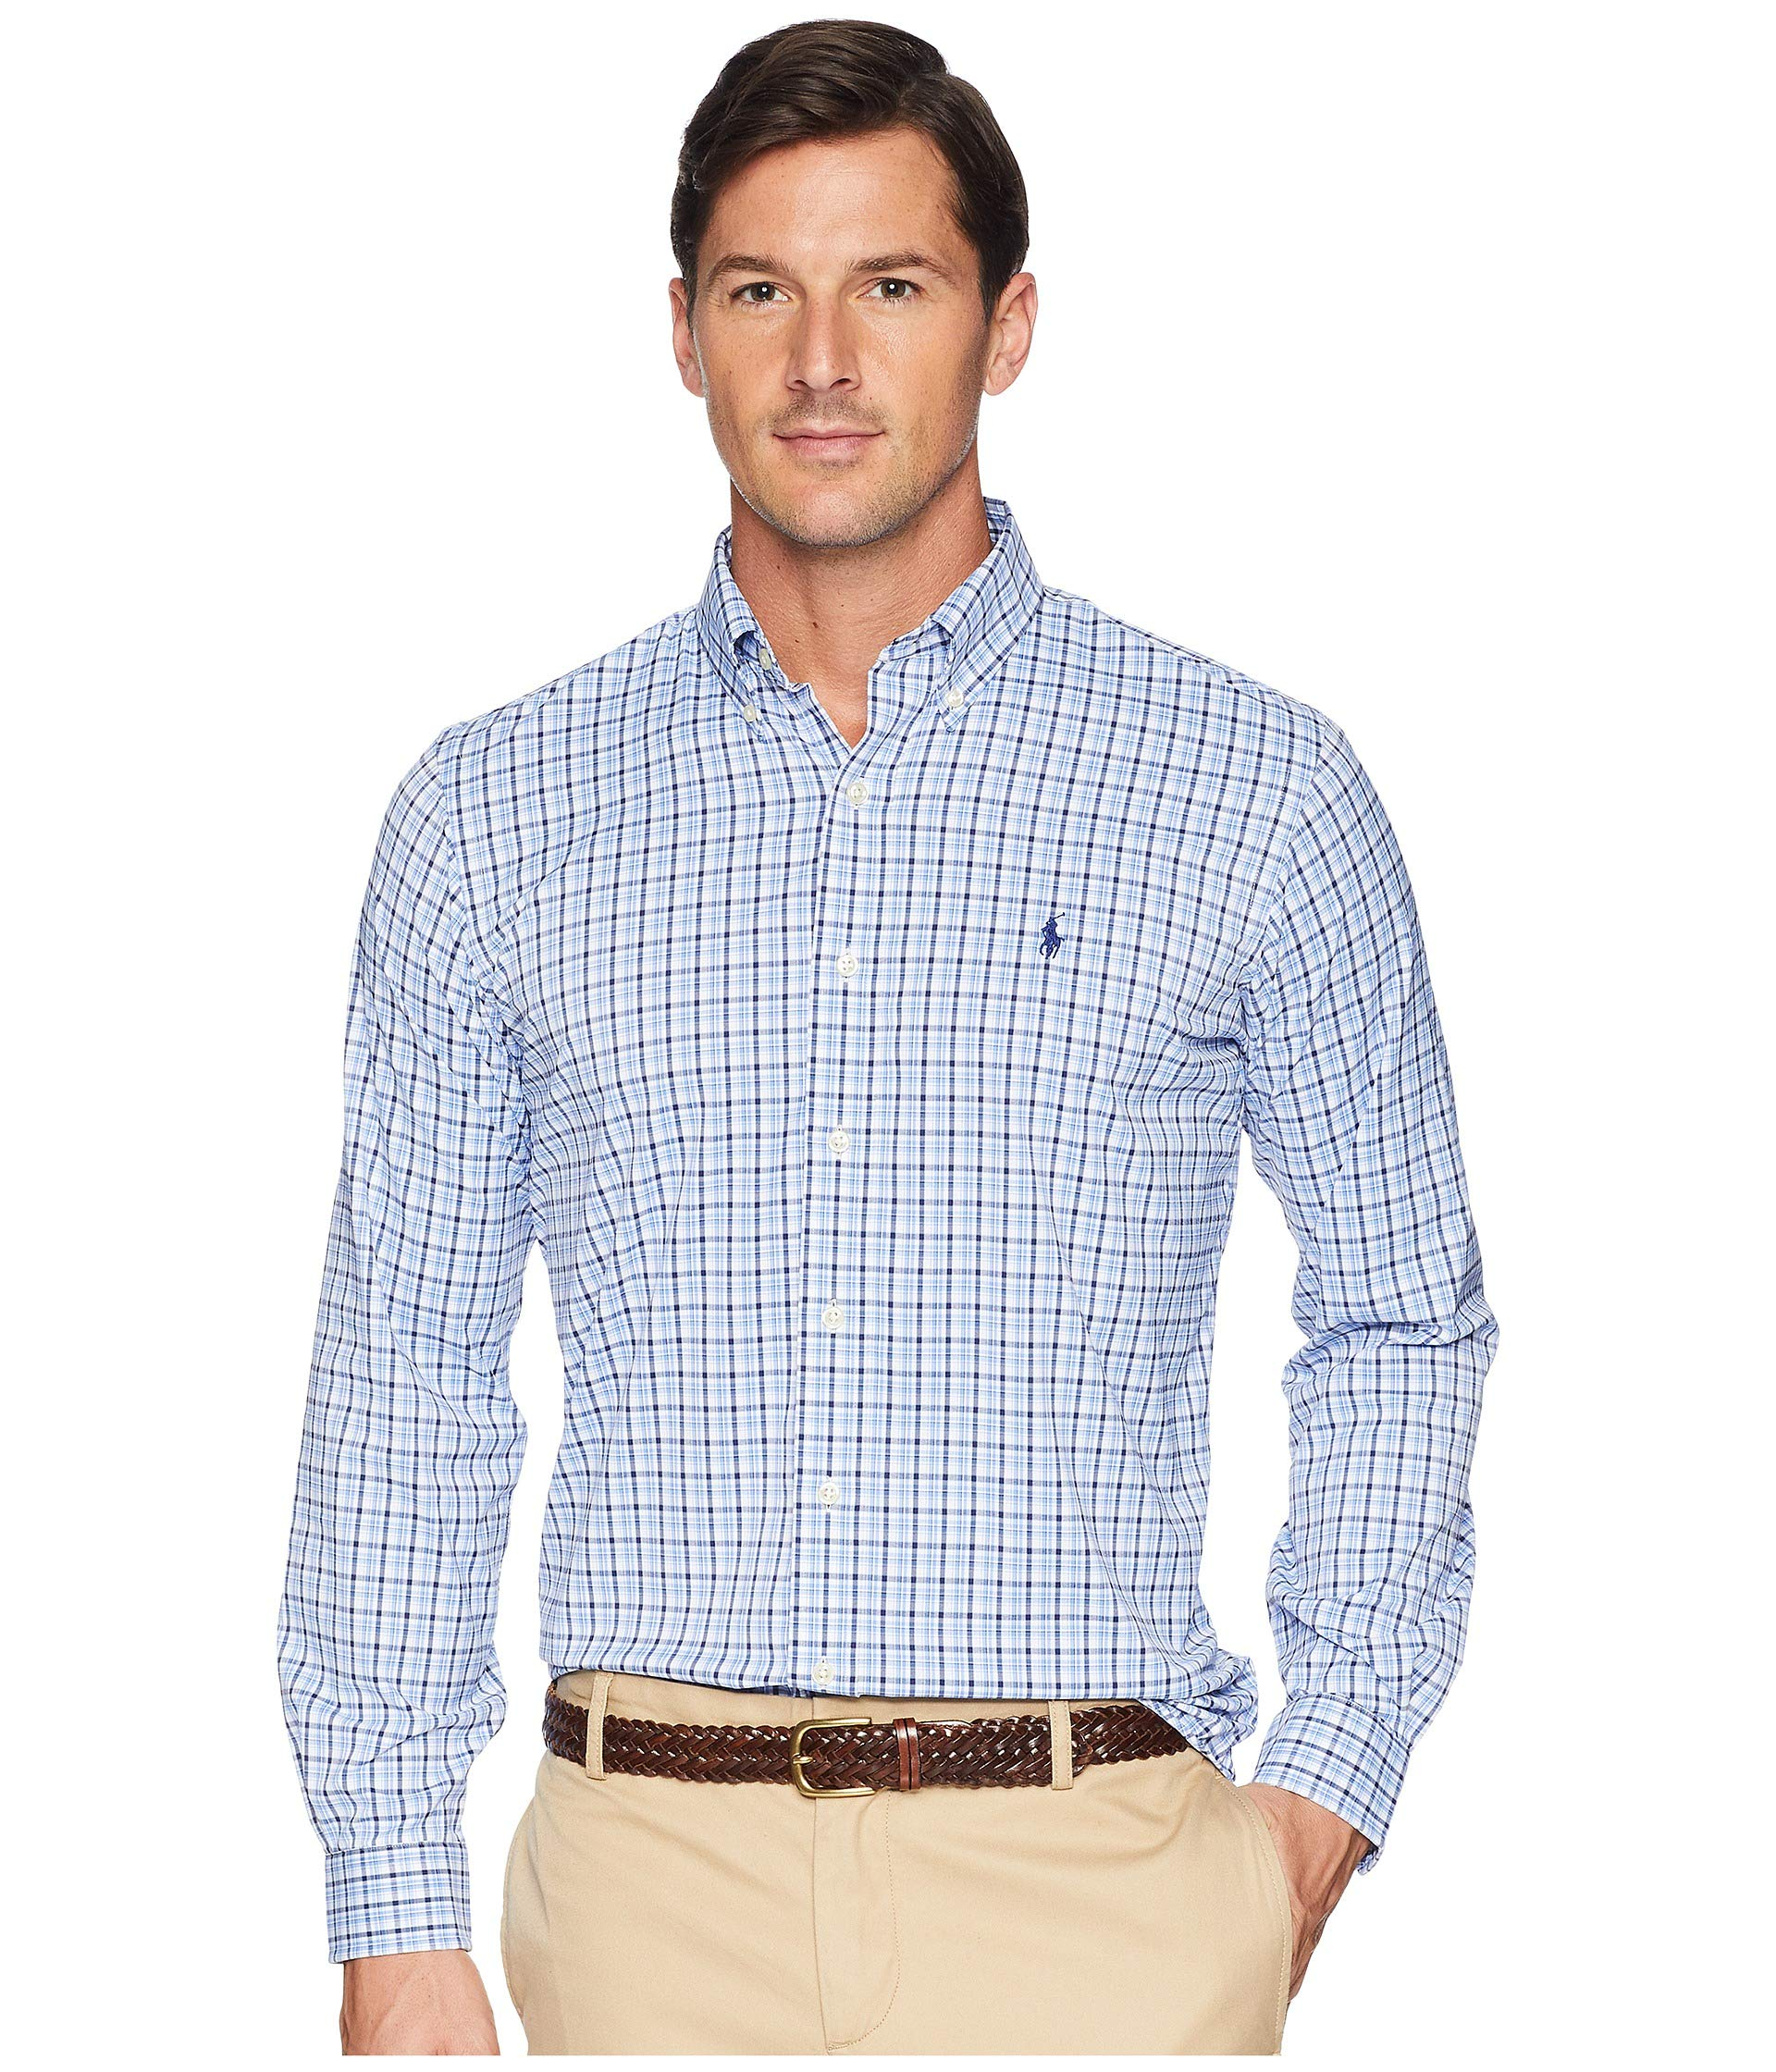 Fit Shirt Sports Polo Classic Blue Woven Ralph Lauren Multi white Performance xFwnqnO40S